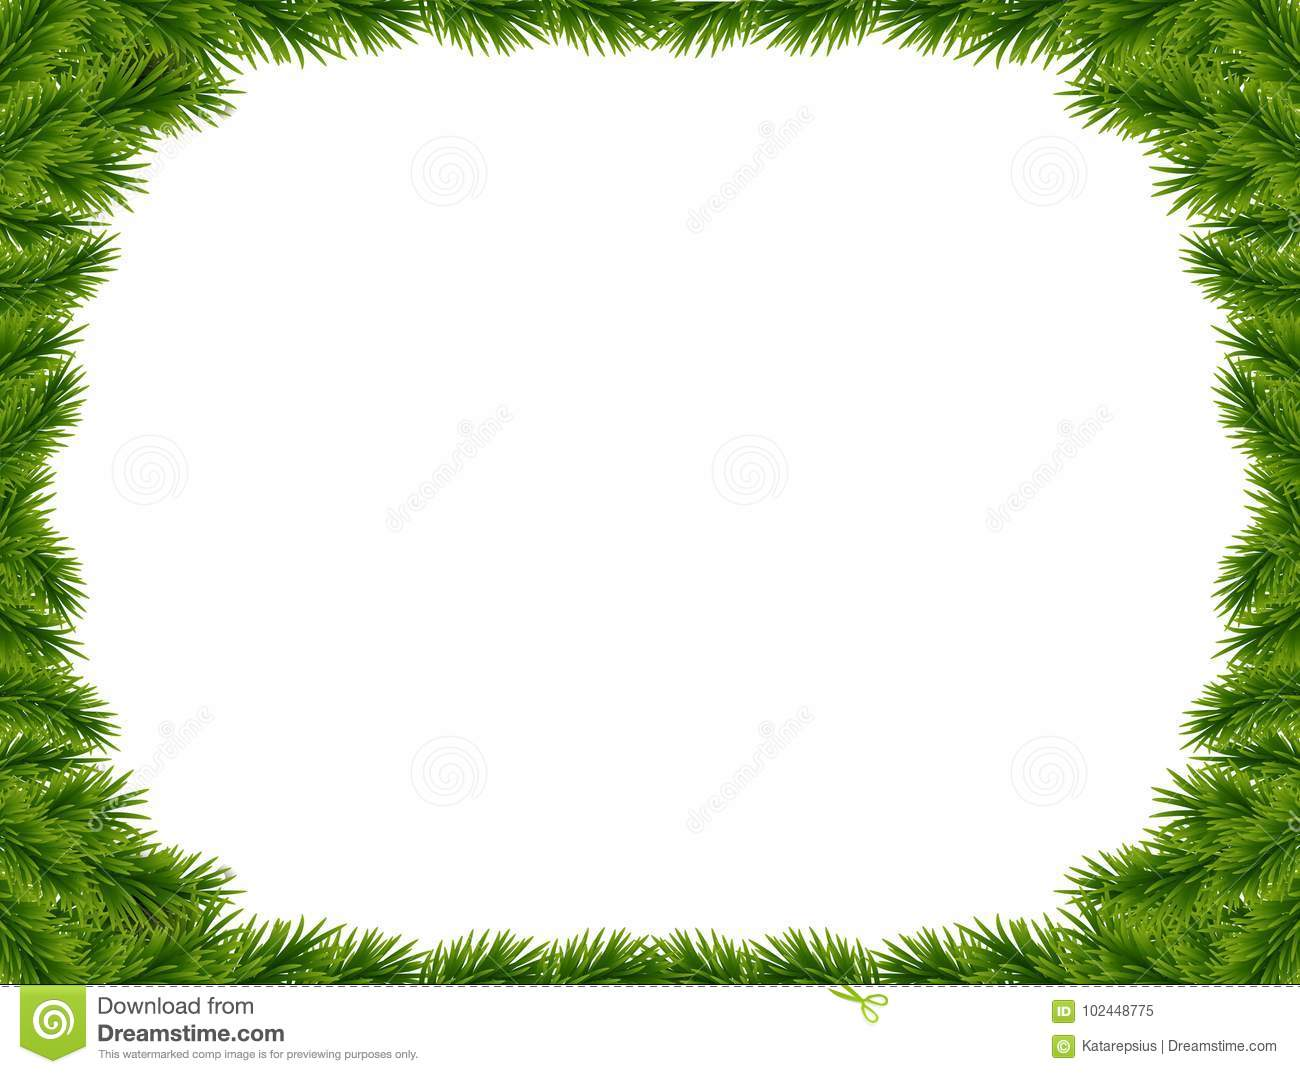 Vector Christmas Tree.Background With Vector Christmas Tree Branches And Space For